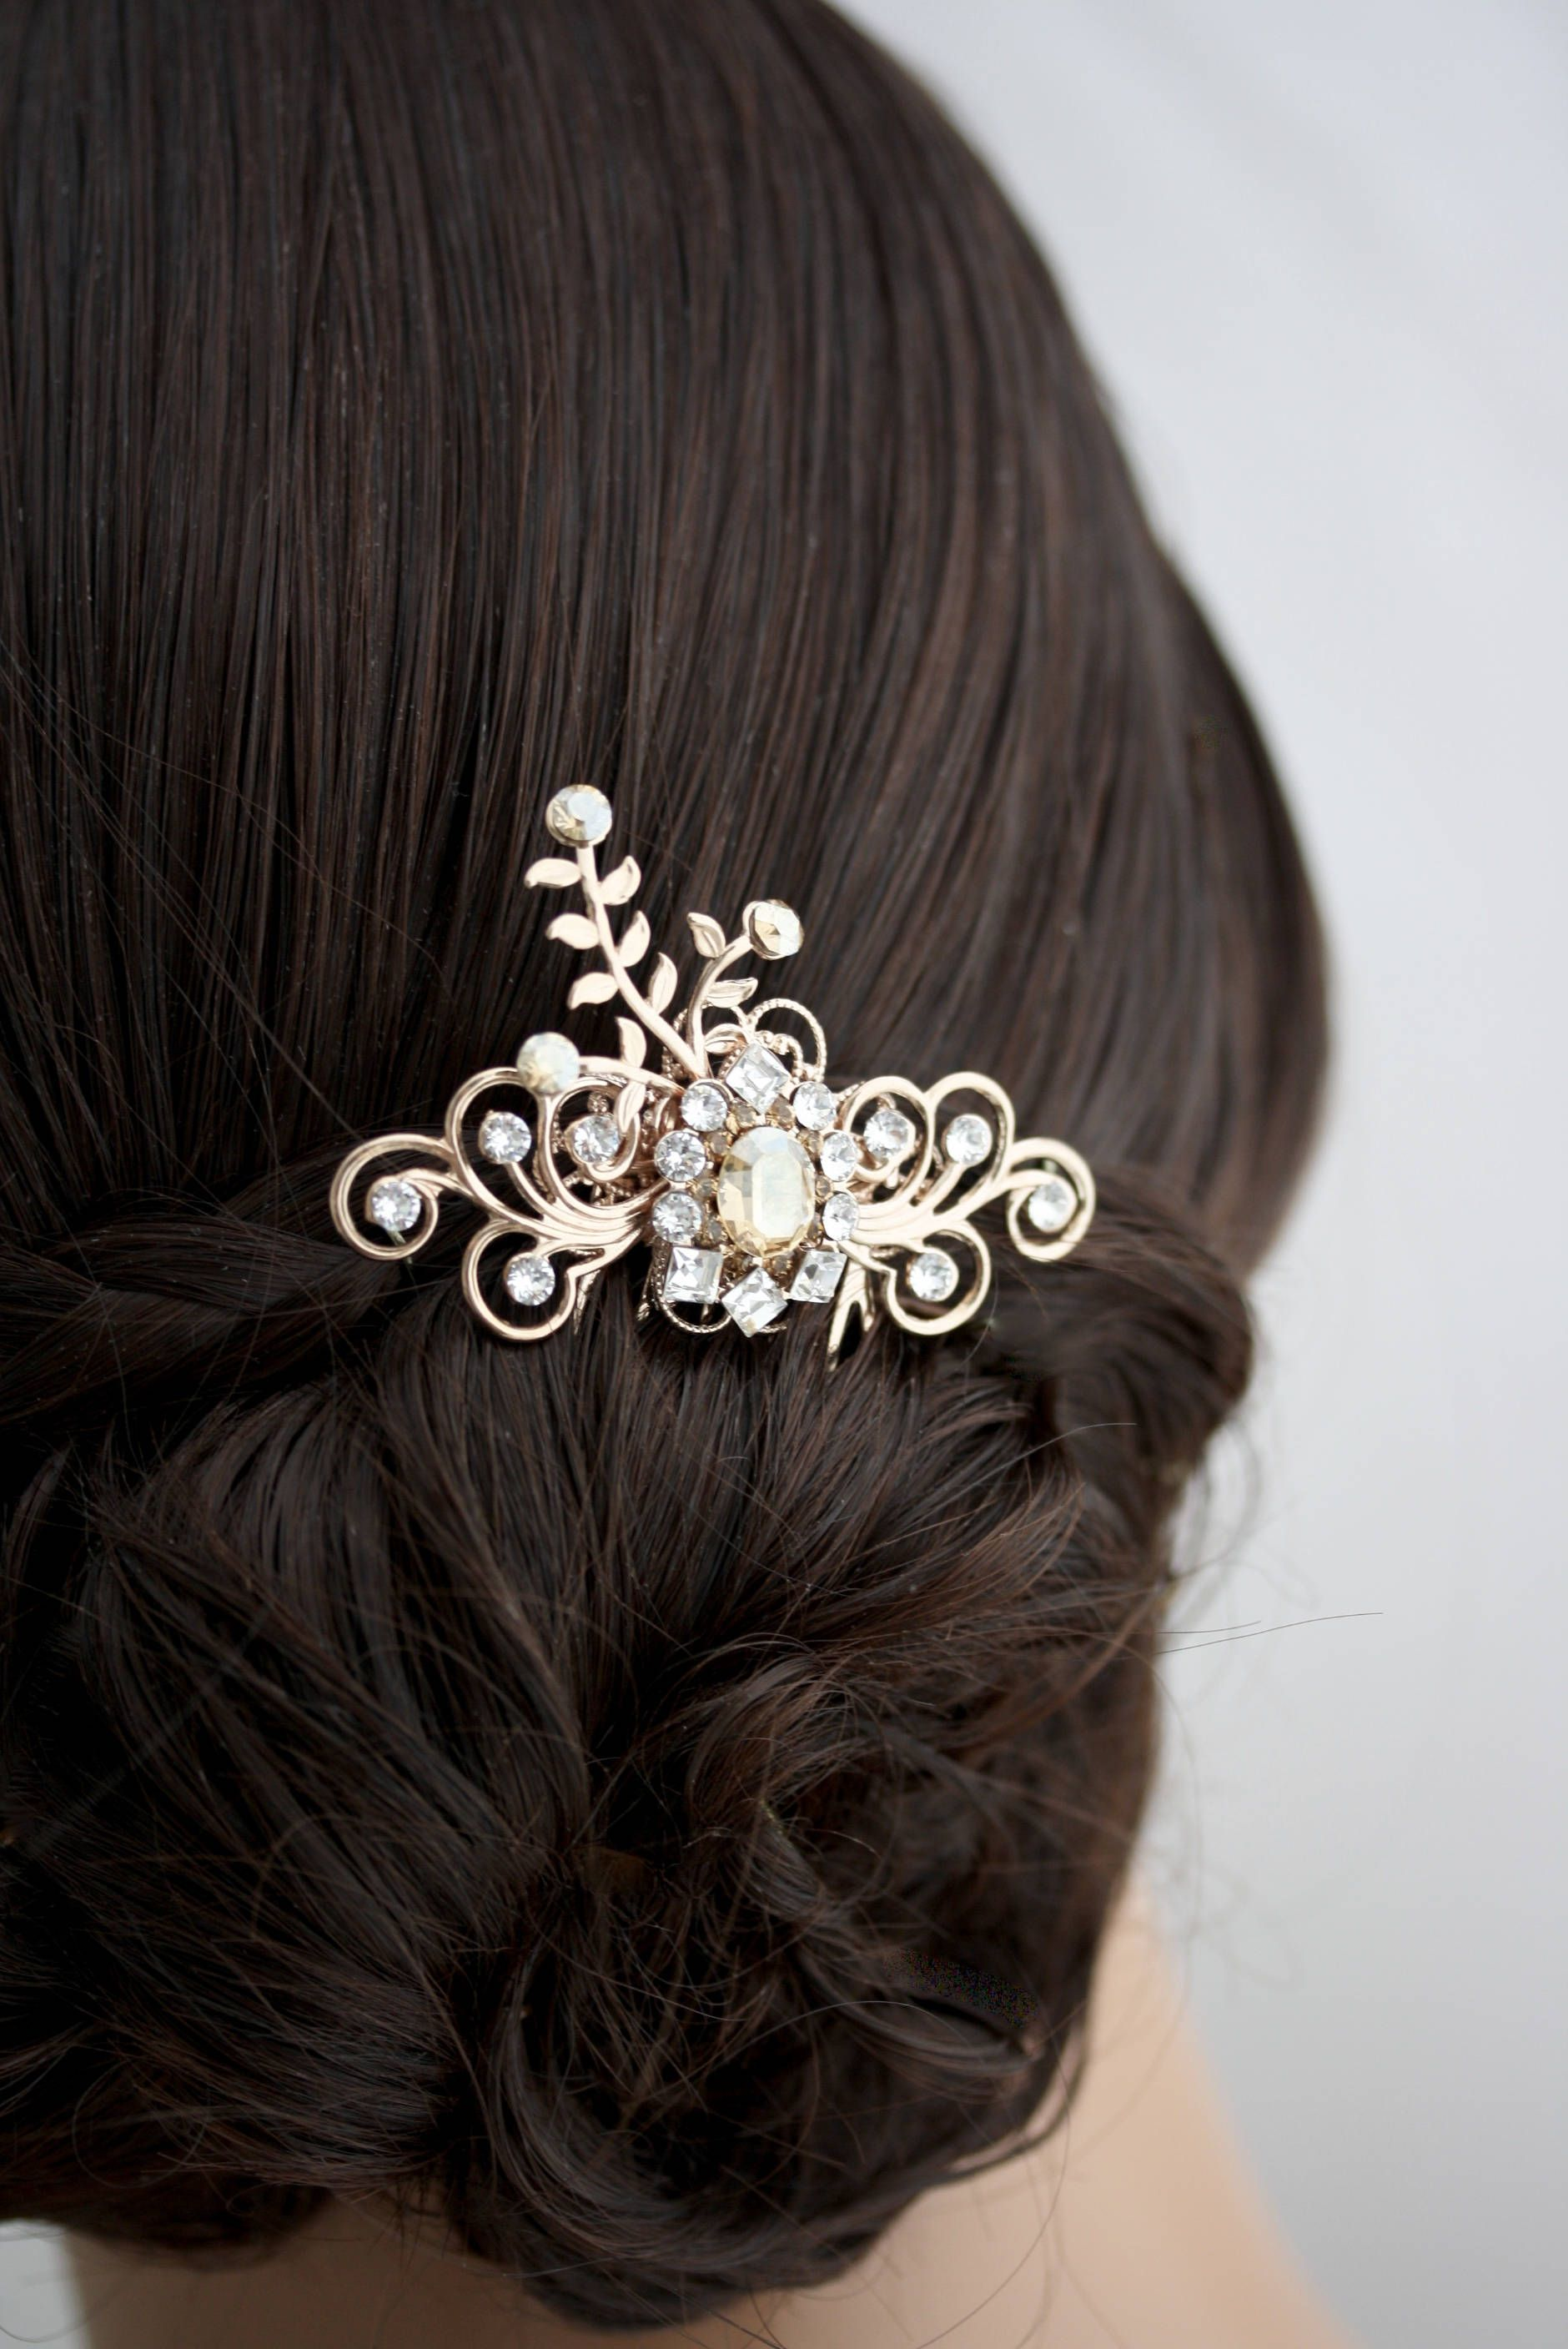 rose gold hair comb champagne bridal hair accessories small bridal hair comb wedding hair piece decorative hair comb mercy by lulusplendor on etsy